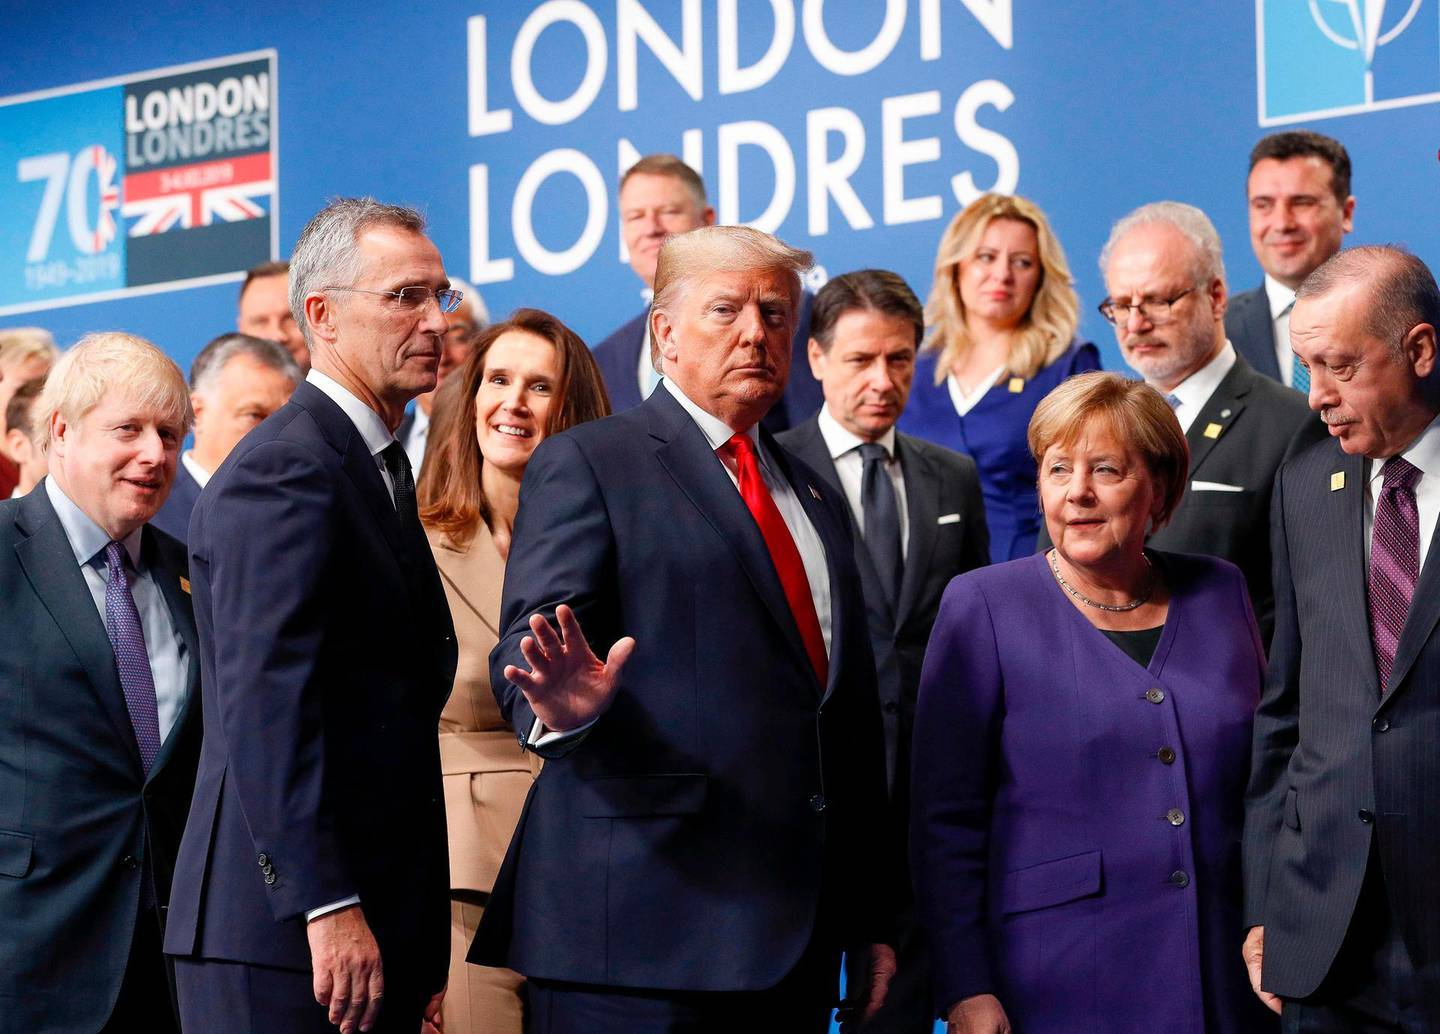 Britain's Prime Minister Boris Johnson (L), US President Donald Trump (C), German Chancellor Angela Merkel (2R), Turkey's President Recep Tayyip Erdogan (R) and other NATO leaders leave the stage after the family photo to head to the plenary session at the NATO summit at the Grove hotel in Watford, northeast of London on December 4, 2019. / AFP / POOL / PETER NICHOLLS